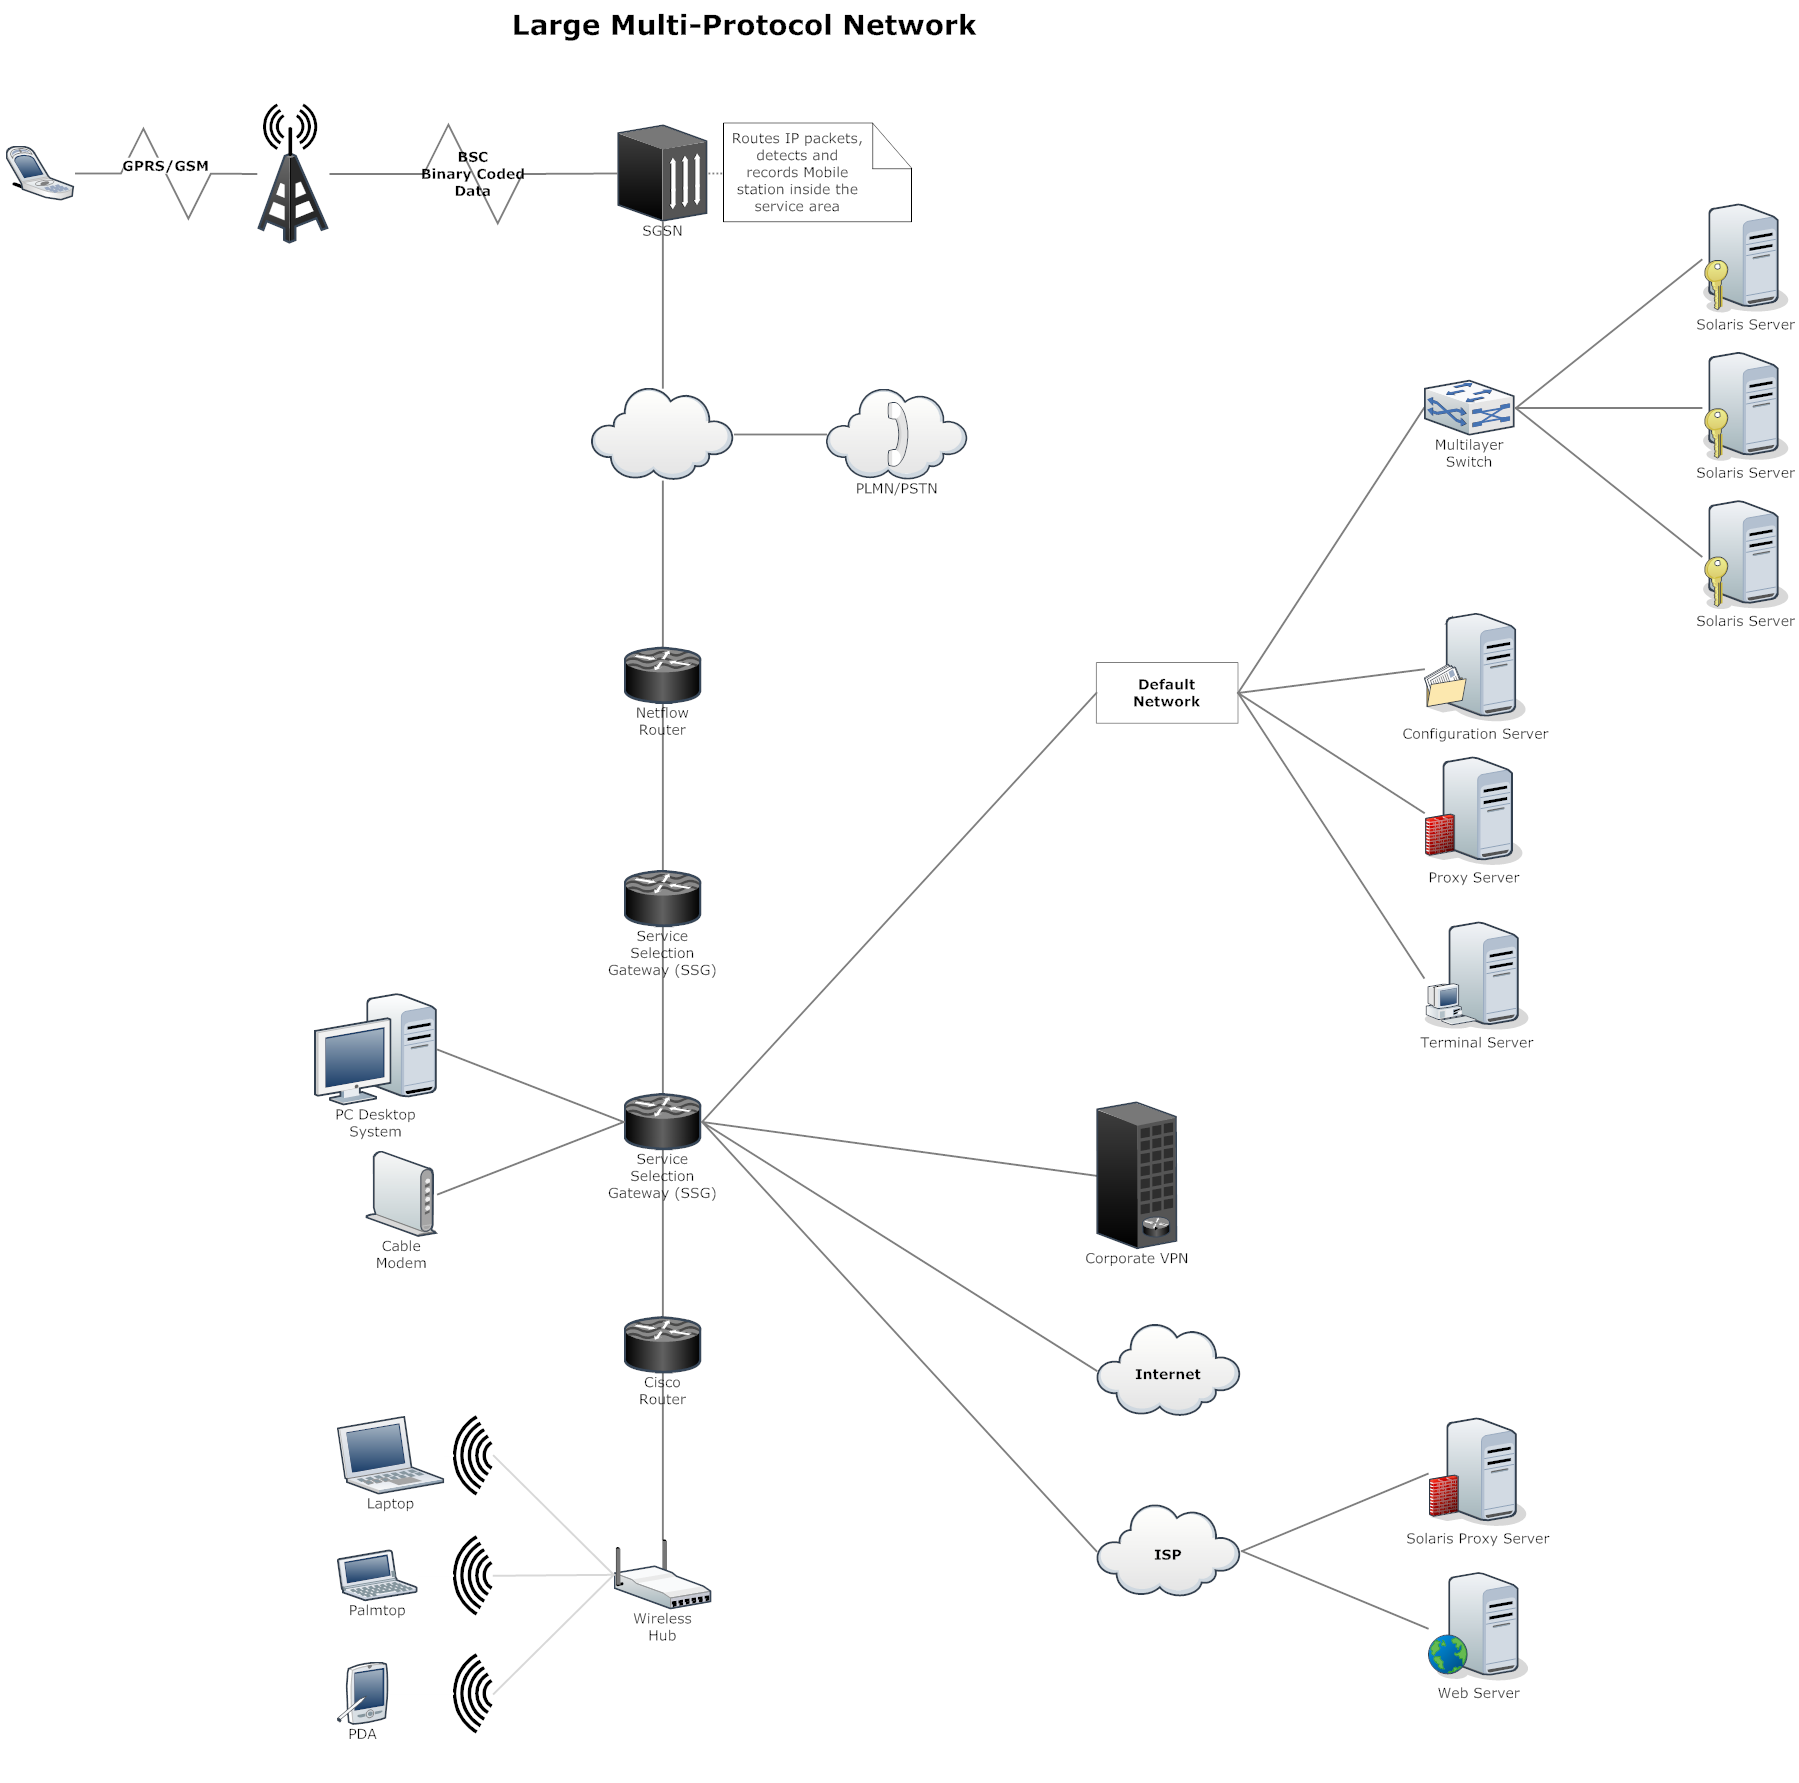 network diagram example large multi protocol network [ 1799 x 1783 Pixel ]